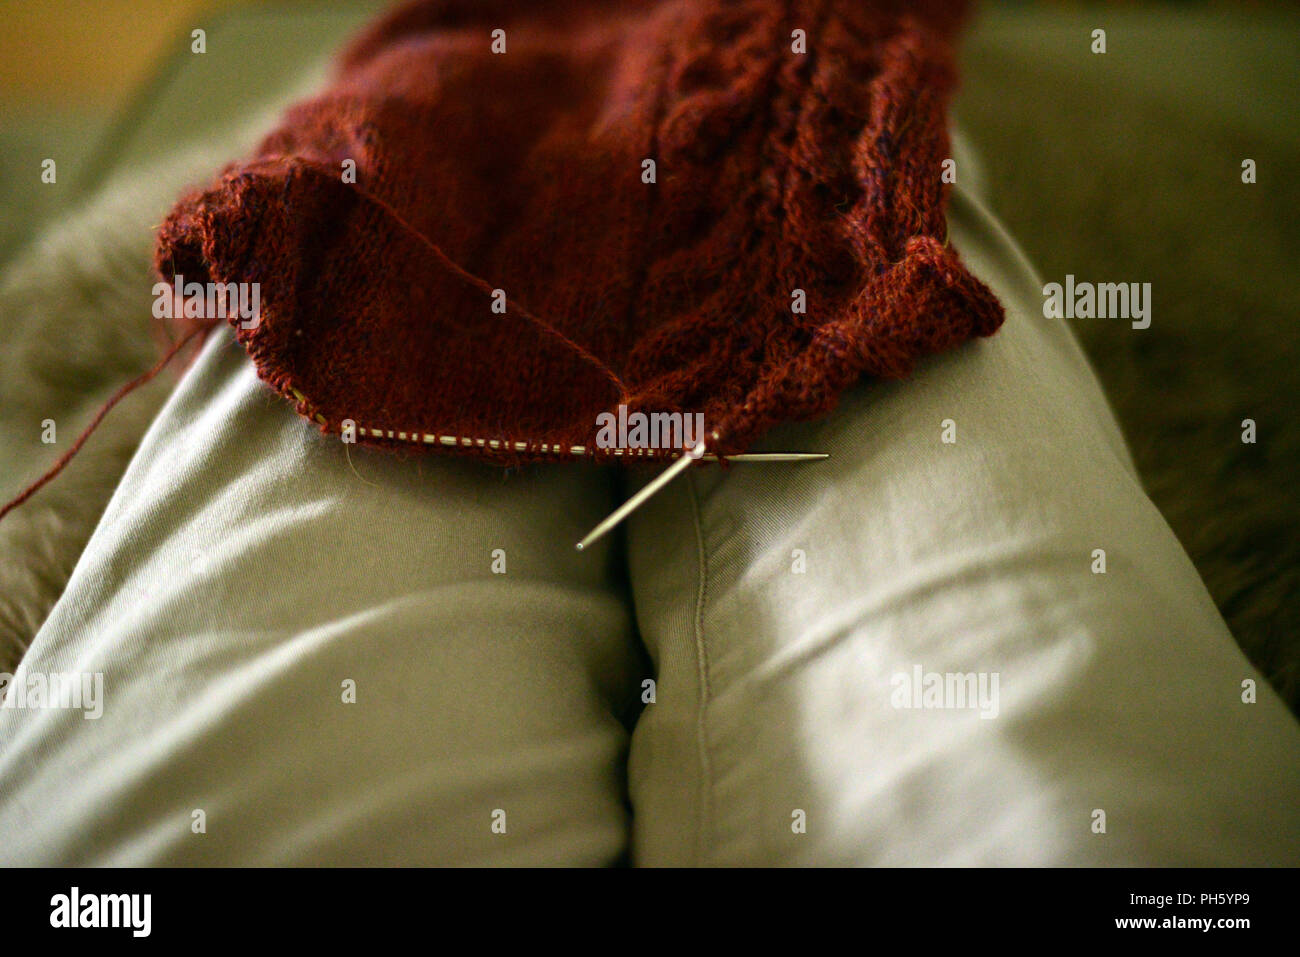 knitting brown wool cardigan, work in progress, from a personal point of view - Stock Image